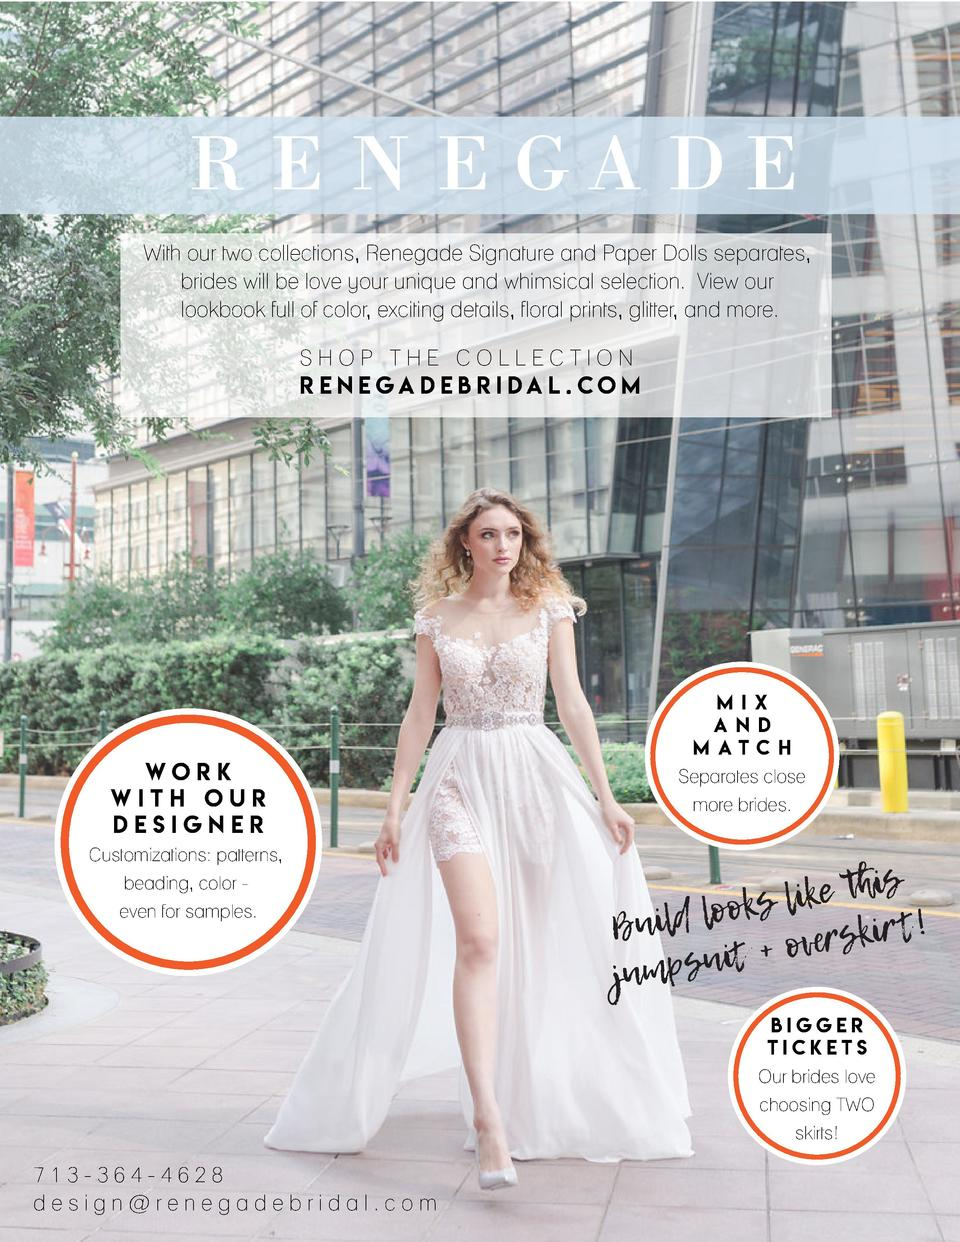 R E N E GA DE With our two collections, Renegade Signature and Paper Dolls separates, brides will be love your unique and ...